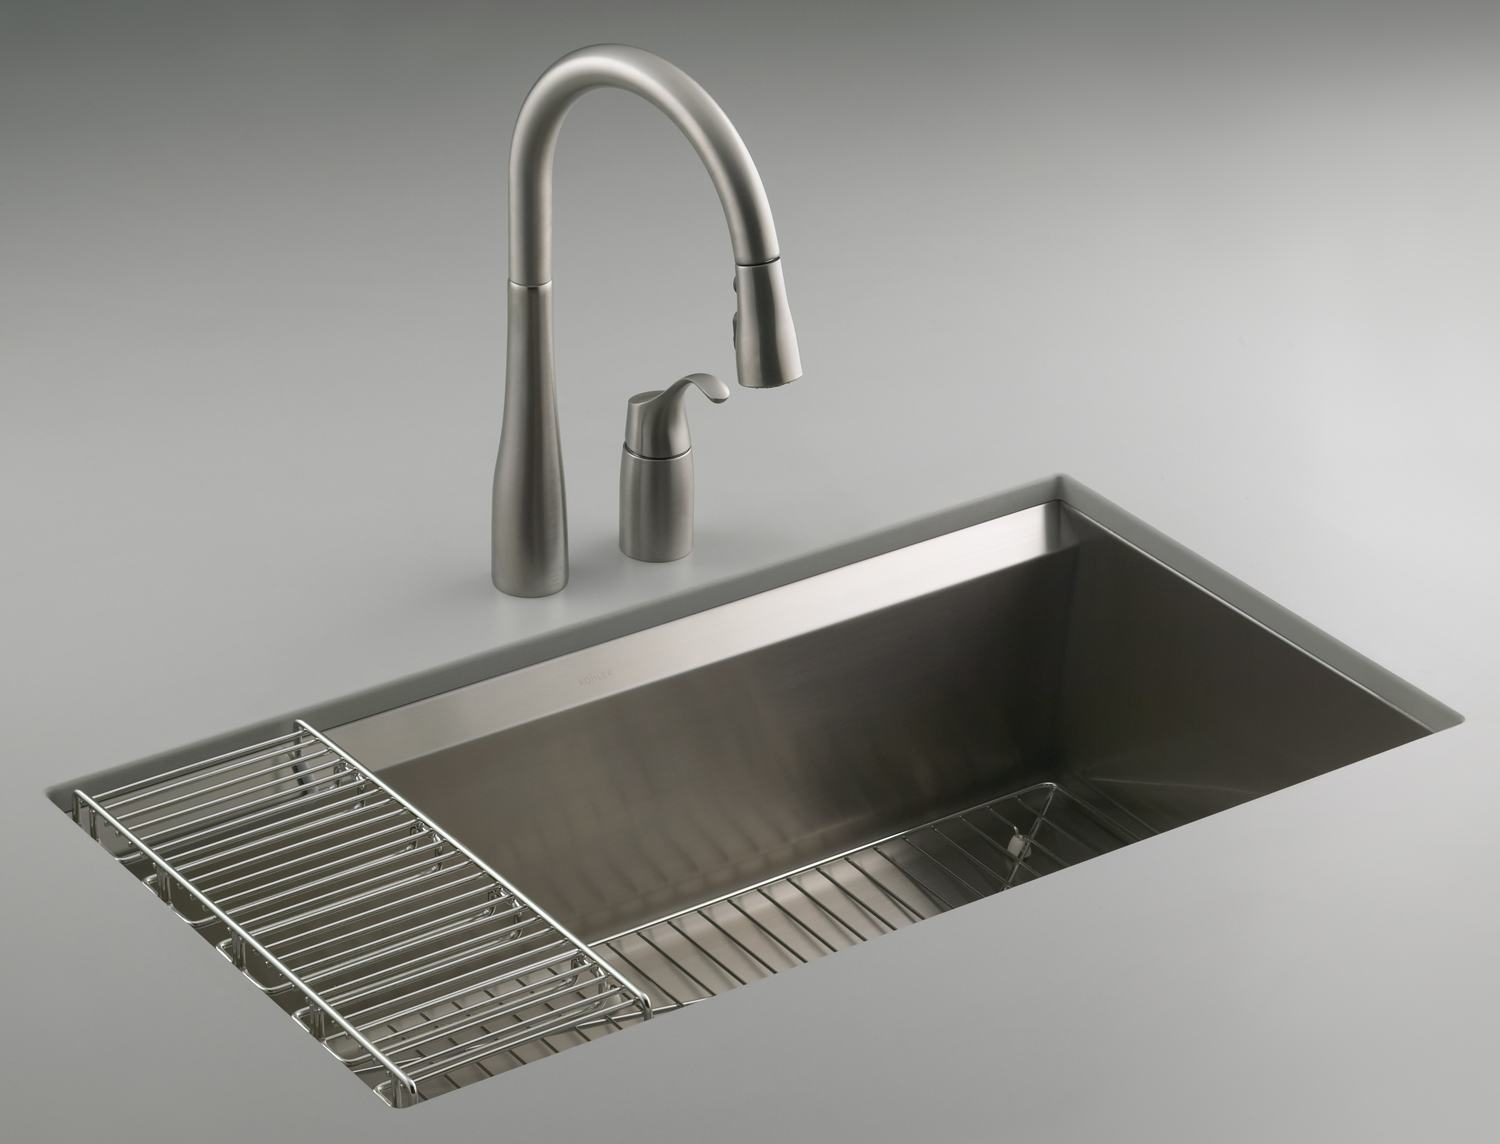 Large Kitchen Sinks Undermount : ... NA 8 Degree Large Single Kitchen Sink - Single Bowl Sinks - Amazon.com